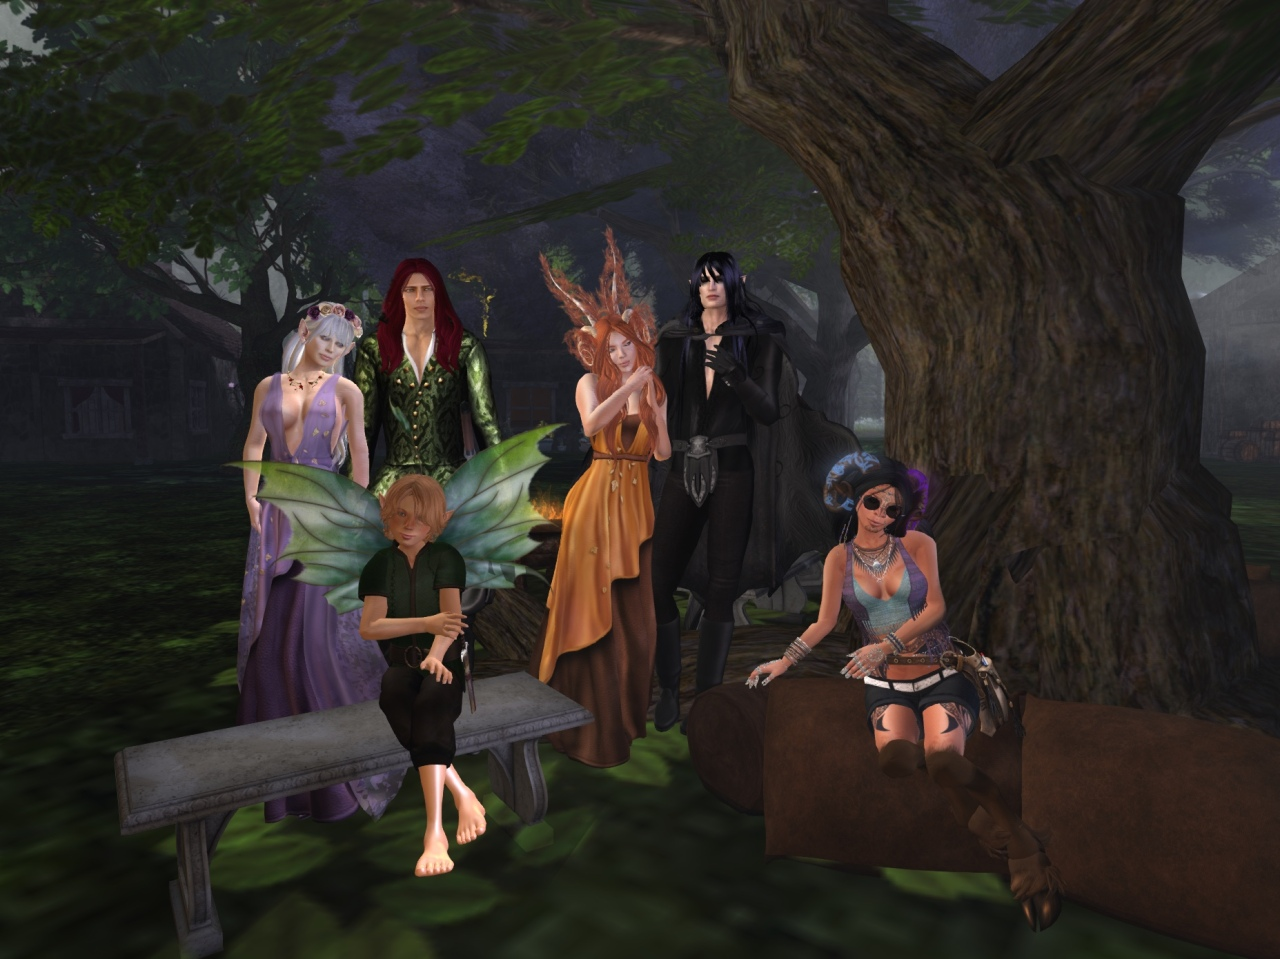 Some of the people who live in or are frequently found in Mysthaven: L-R: (back row) Gwyneth, Seelie Queen in Faerie; Nathanial, Mysthaven Steward and Queen's Consort; Aoibheann, Lost Rabbit and Lord Maric's Consort; Lord Maric, Lord of Mysthaven and by a strange twist of fate the current Unseelie King; (front row) Wren Darling, Fae Teen and Nathaniel's adopted daughter; Dyisi, Elder Satyr, Realm-Walker, teller of tales and talker of riddles.